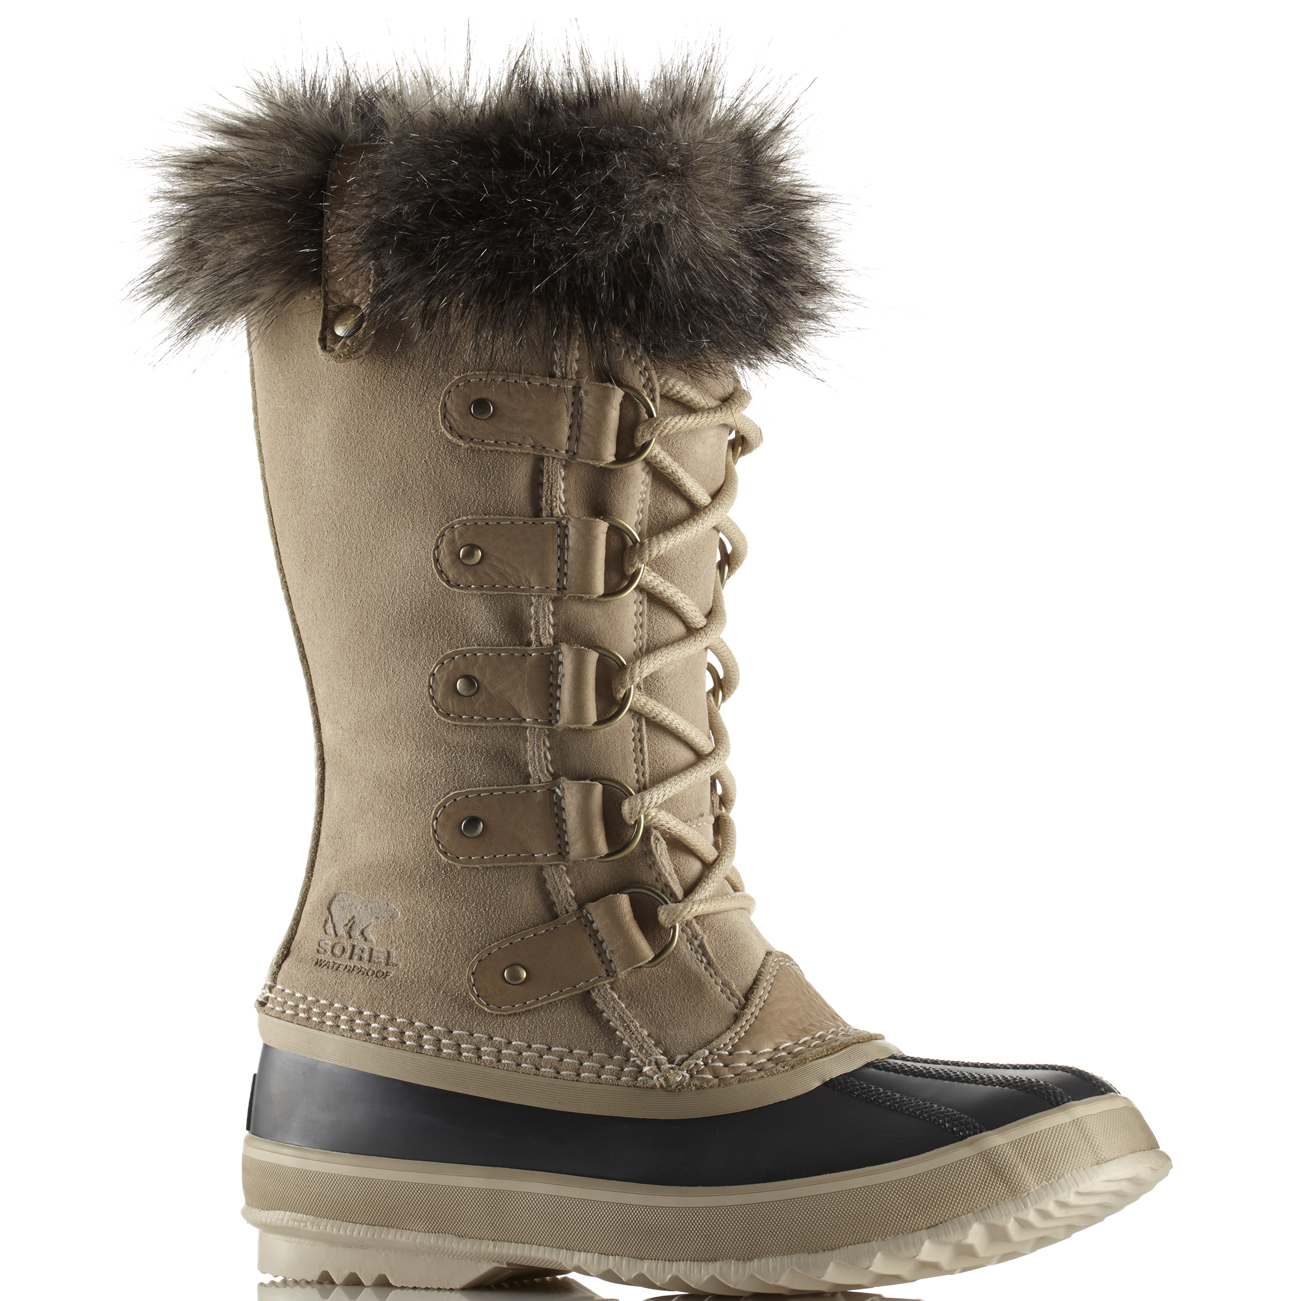 damen Sorel Sorel Sorel Joan Of Arctic Snow Fur Waterproof Rain Calf Winter Stiefel US 5-11 45dfaf